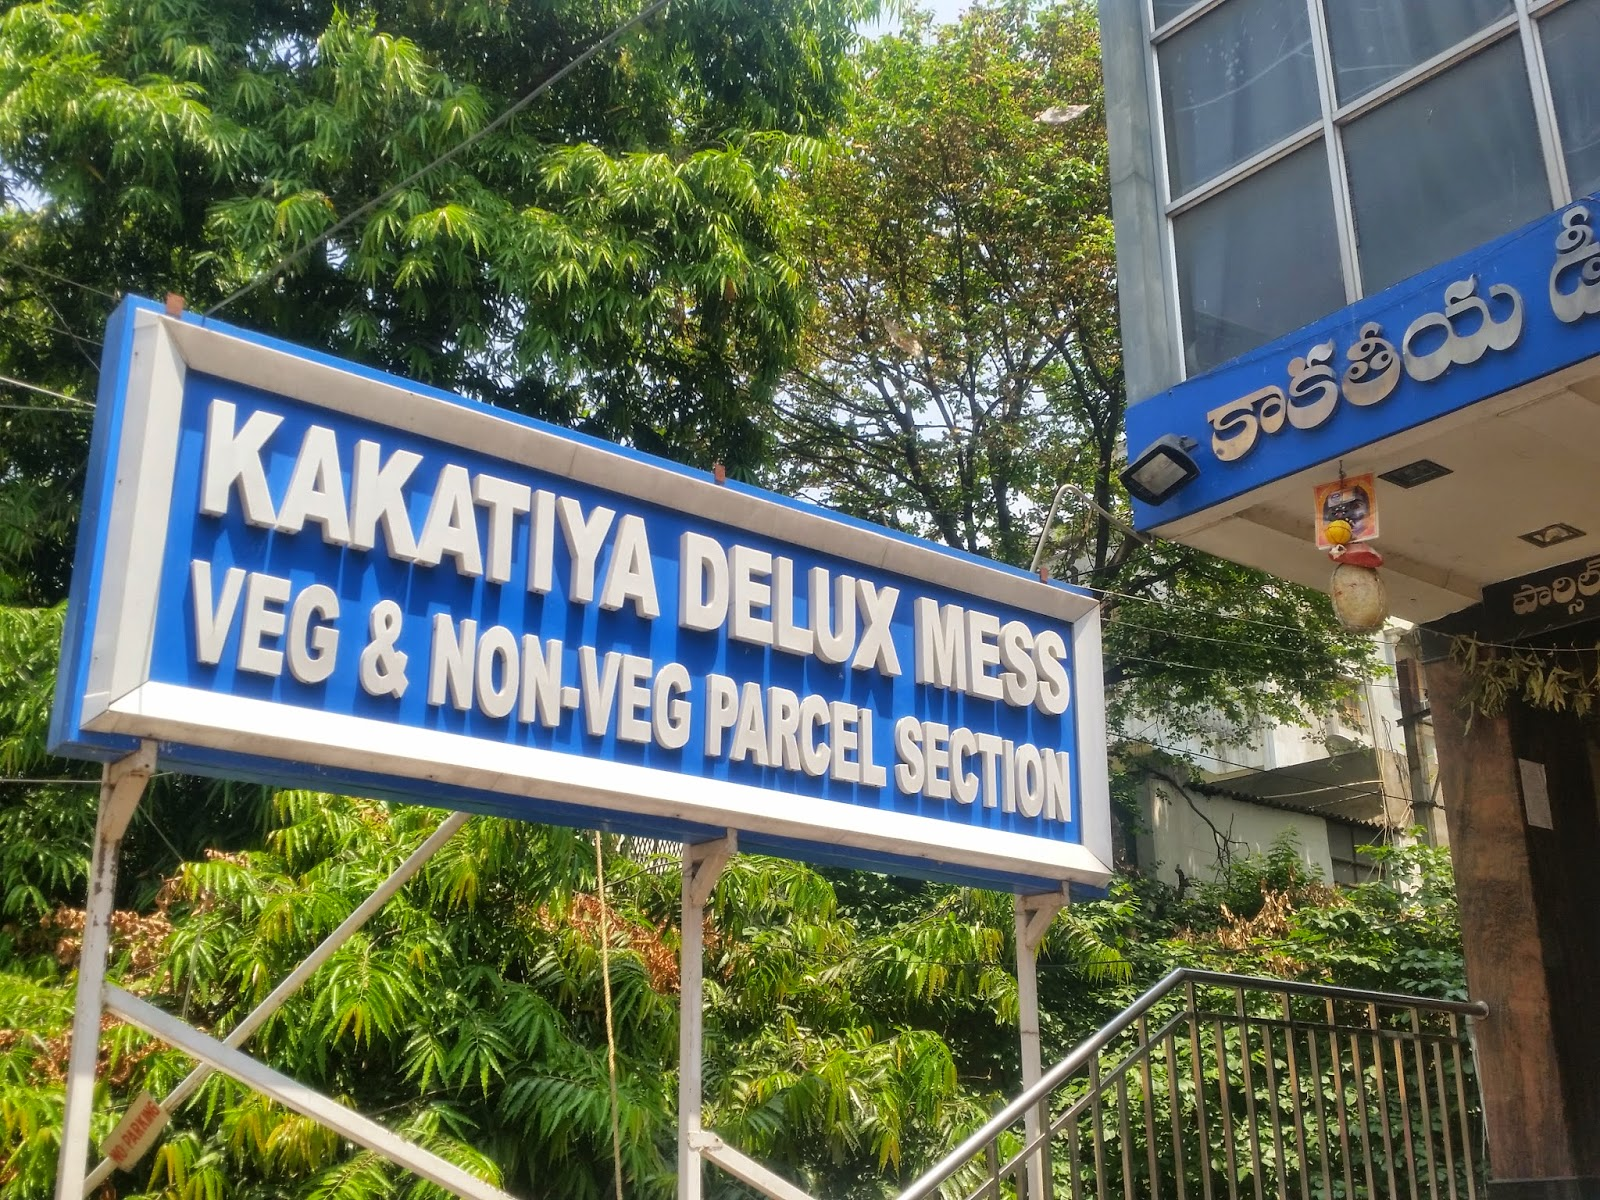 Kakatiya Parcel Section